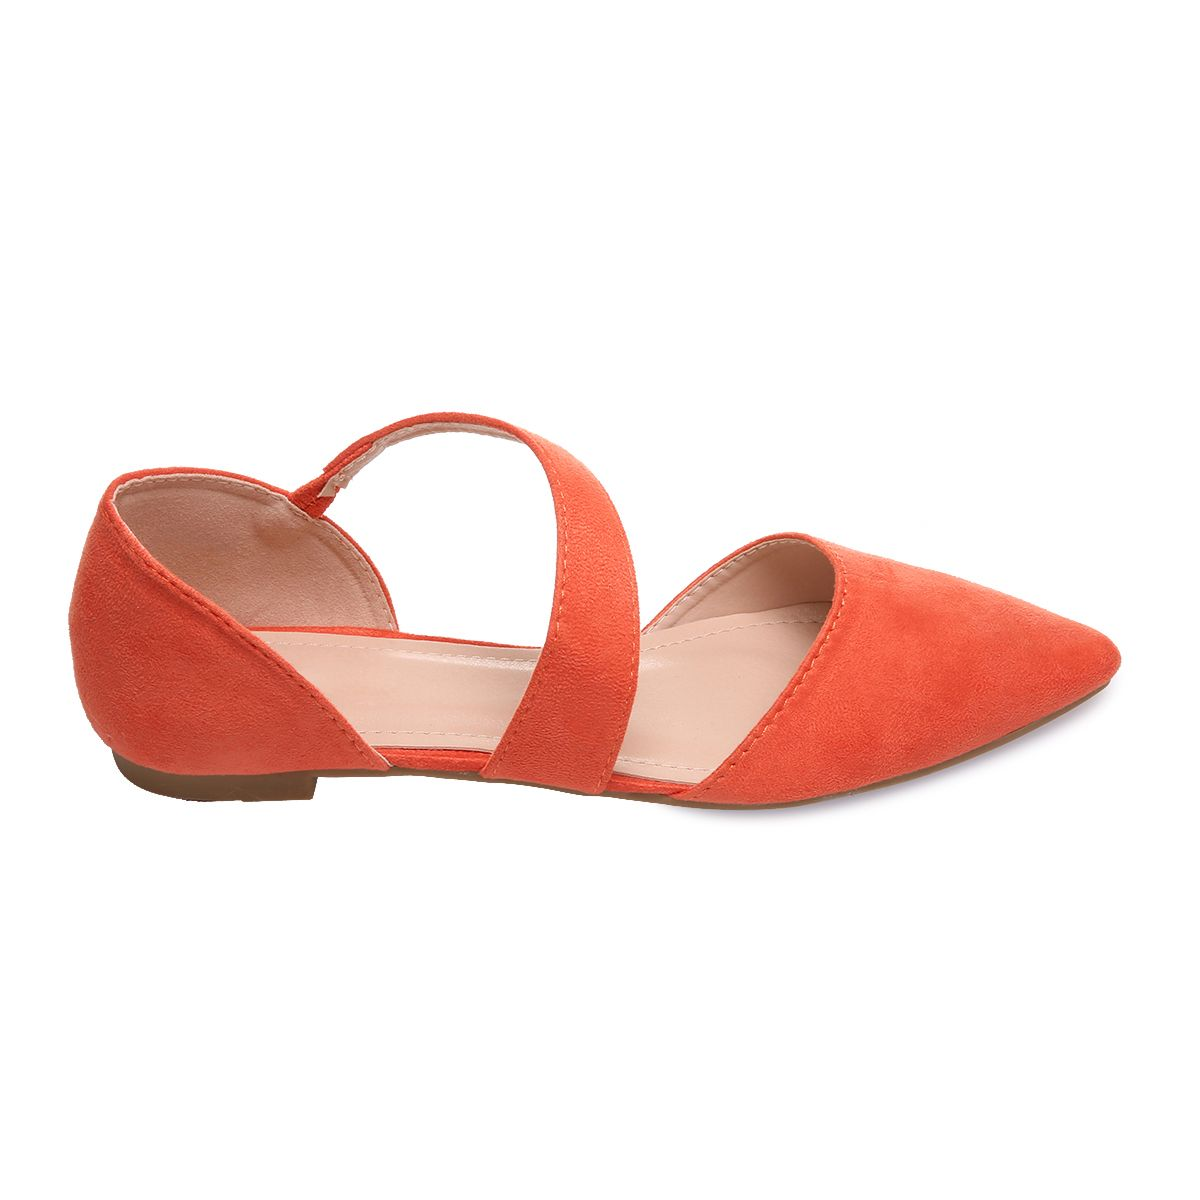 Ballerines orange à bride et bout pointu